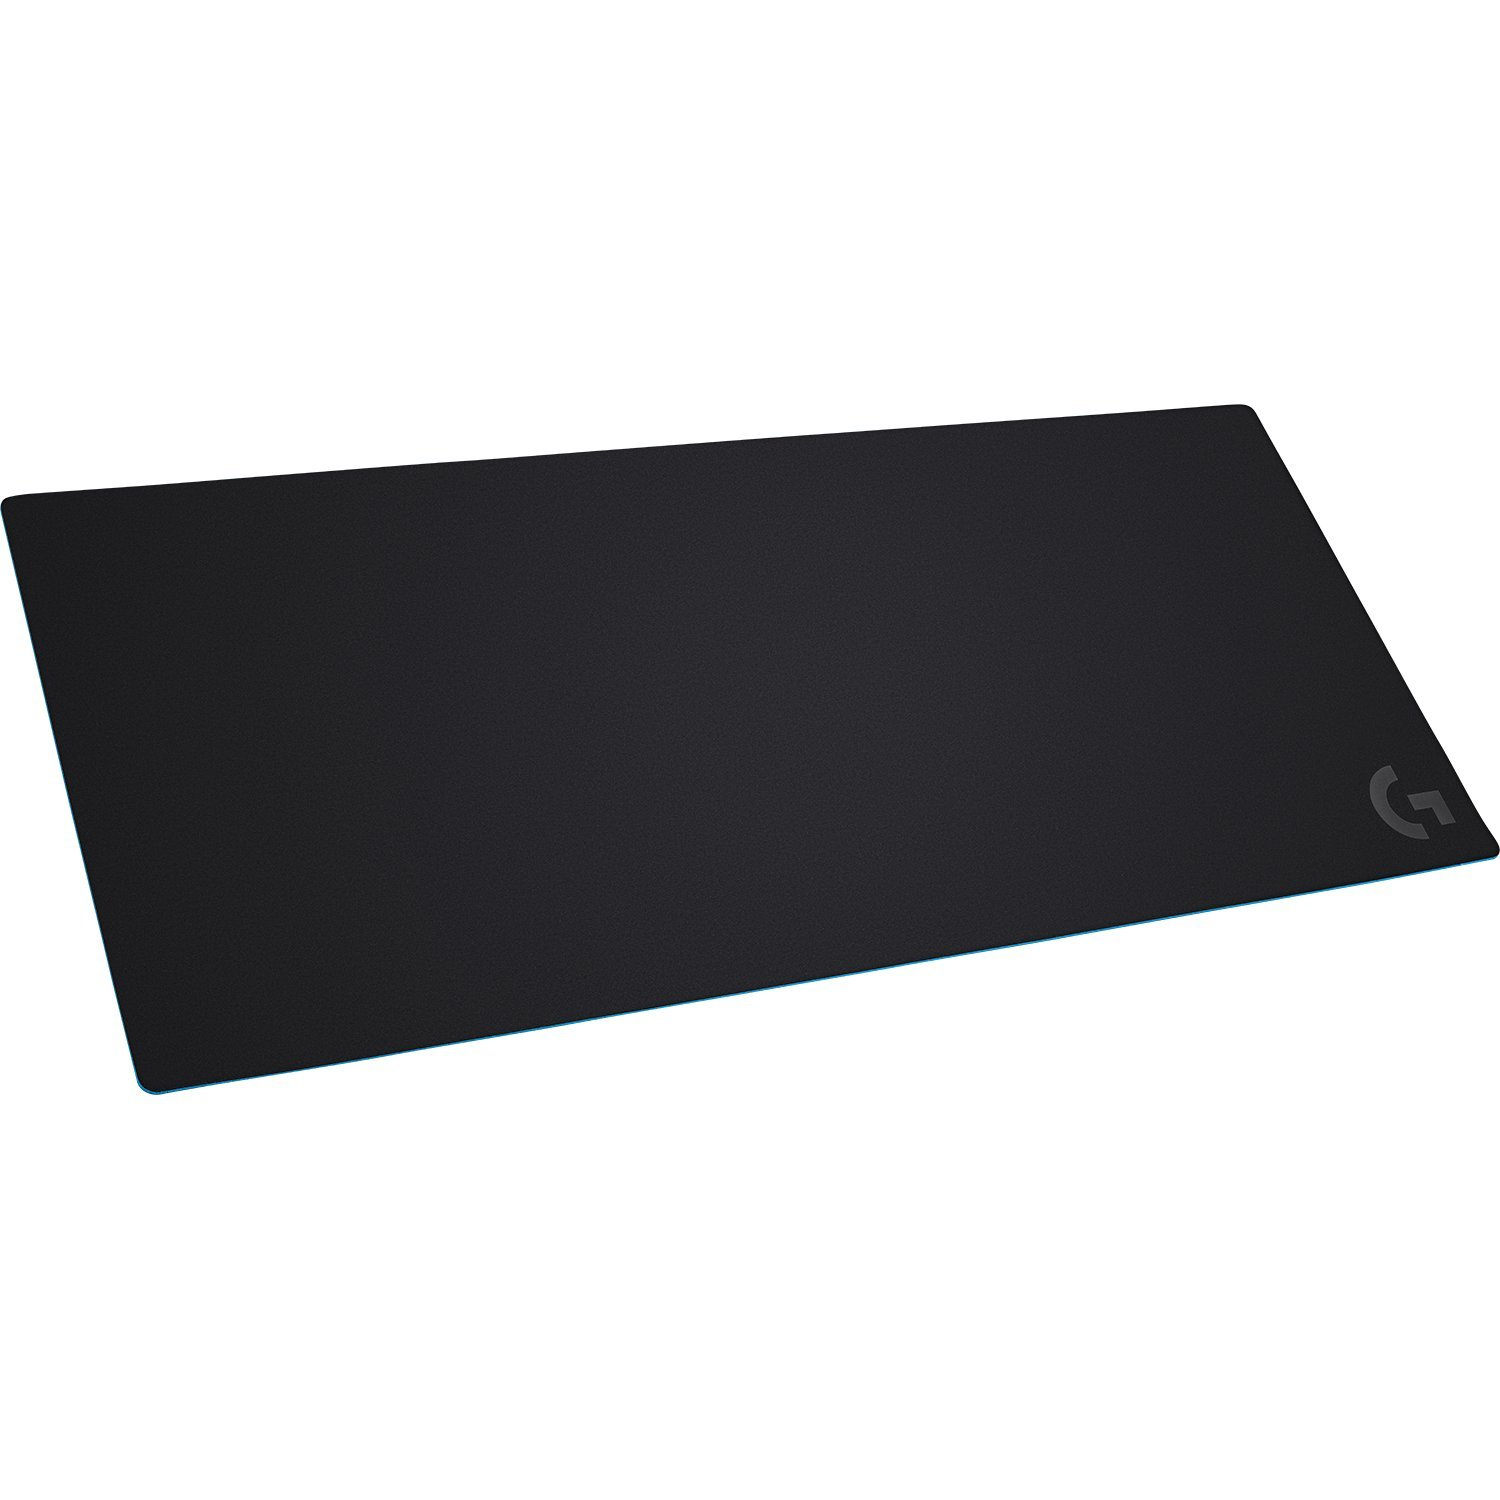 Logitech G840 Xl Cloth Gaming Mouse Pad (xam)